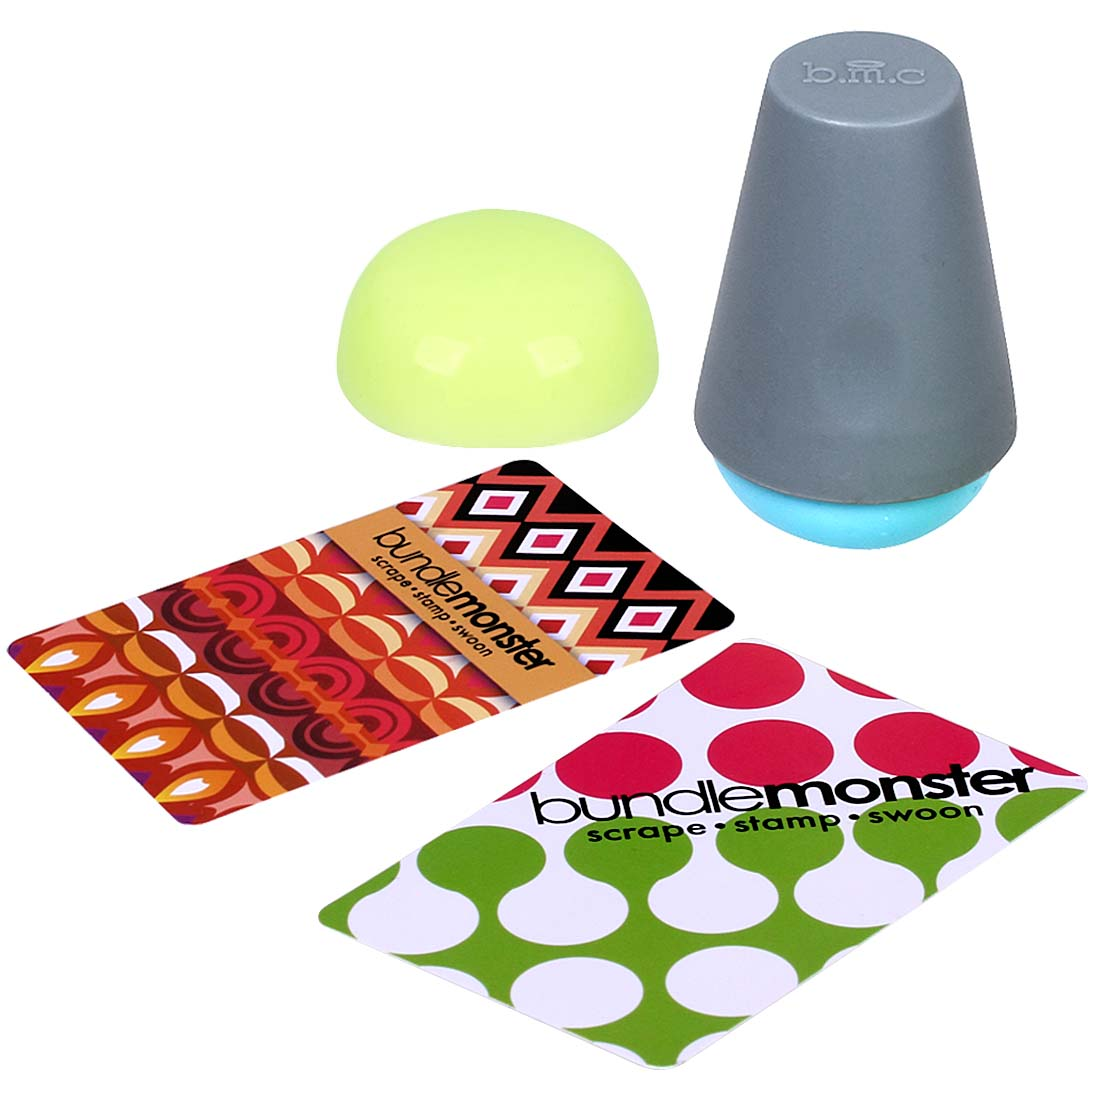 Maniology (formerly bmc) 4pc Domed Shaped Squishy Silicone Nail Art Mega Stamper w/ Scraper Cards